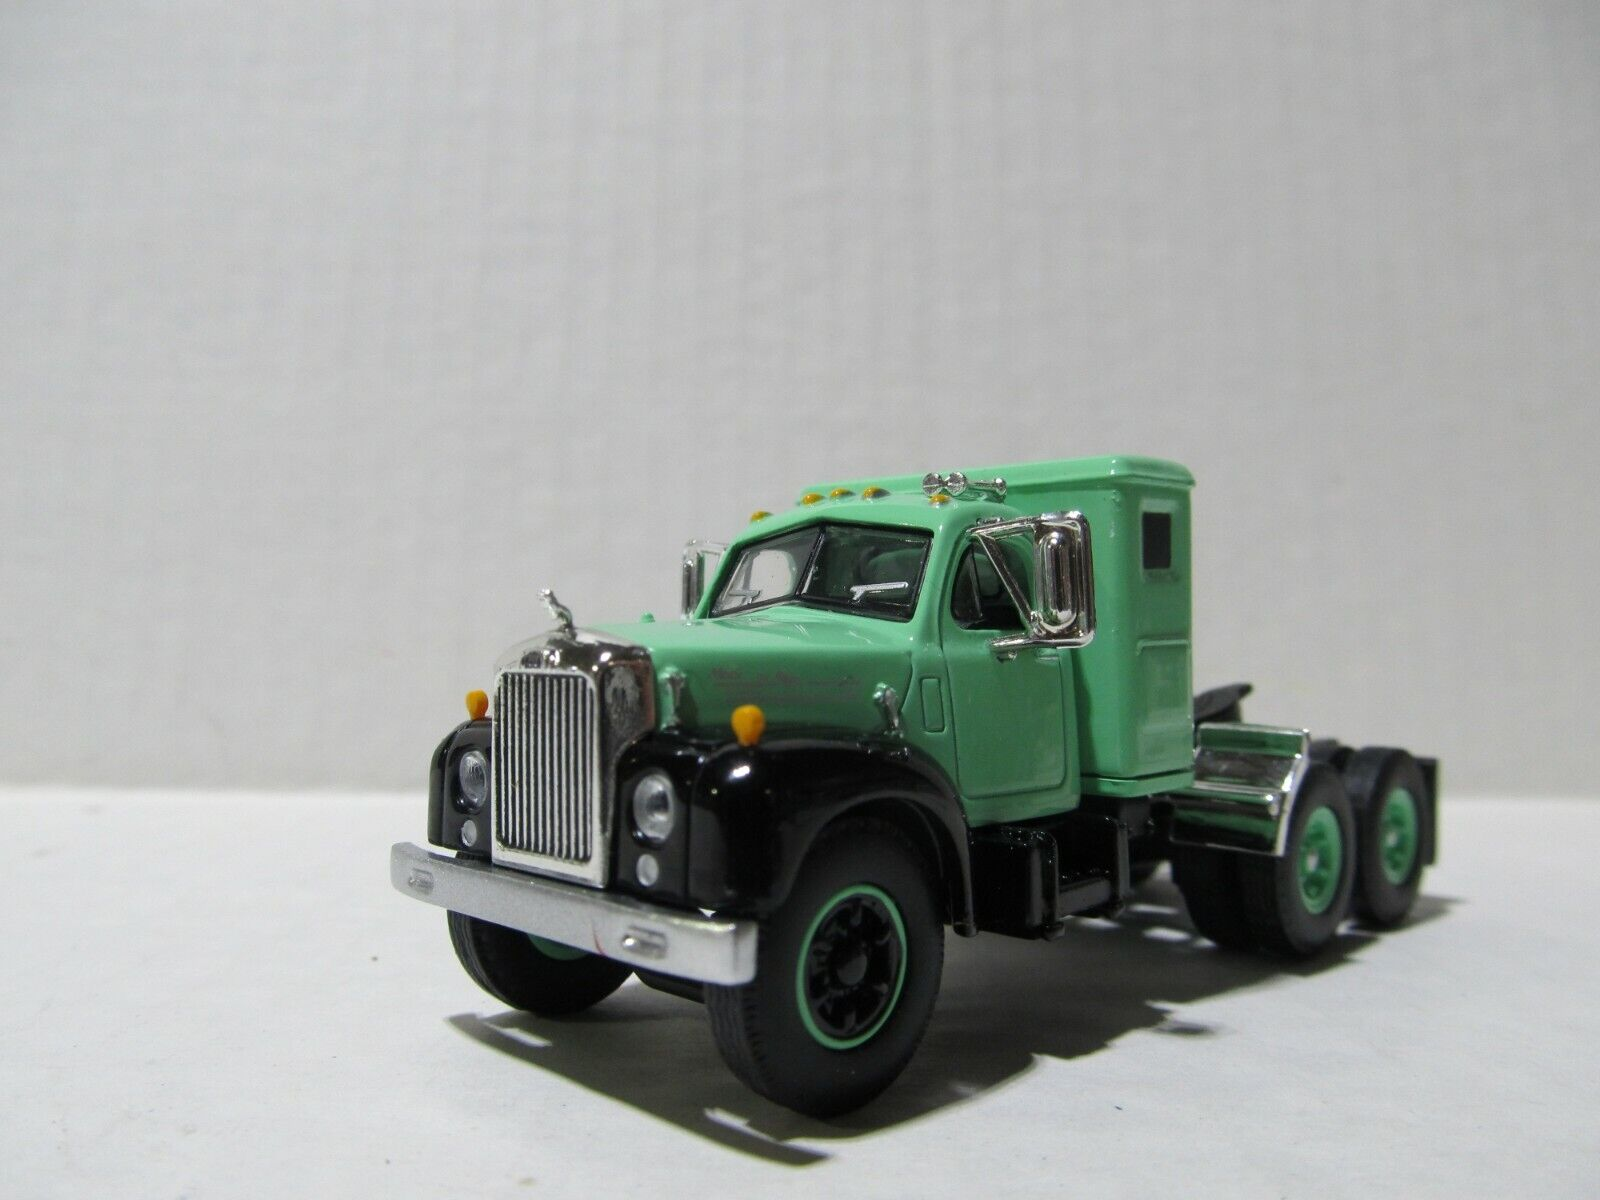 1ST GEAR 1/64 SCALE B MODEL MACK SMALL BUNK  BLACK & TEAL  SAME SCALE AS DCP